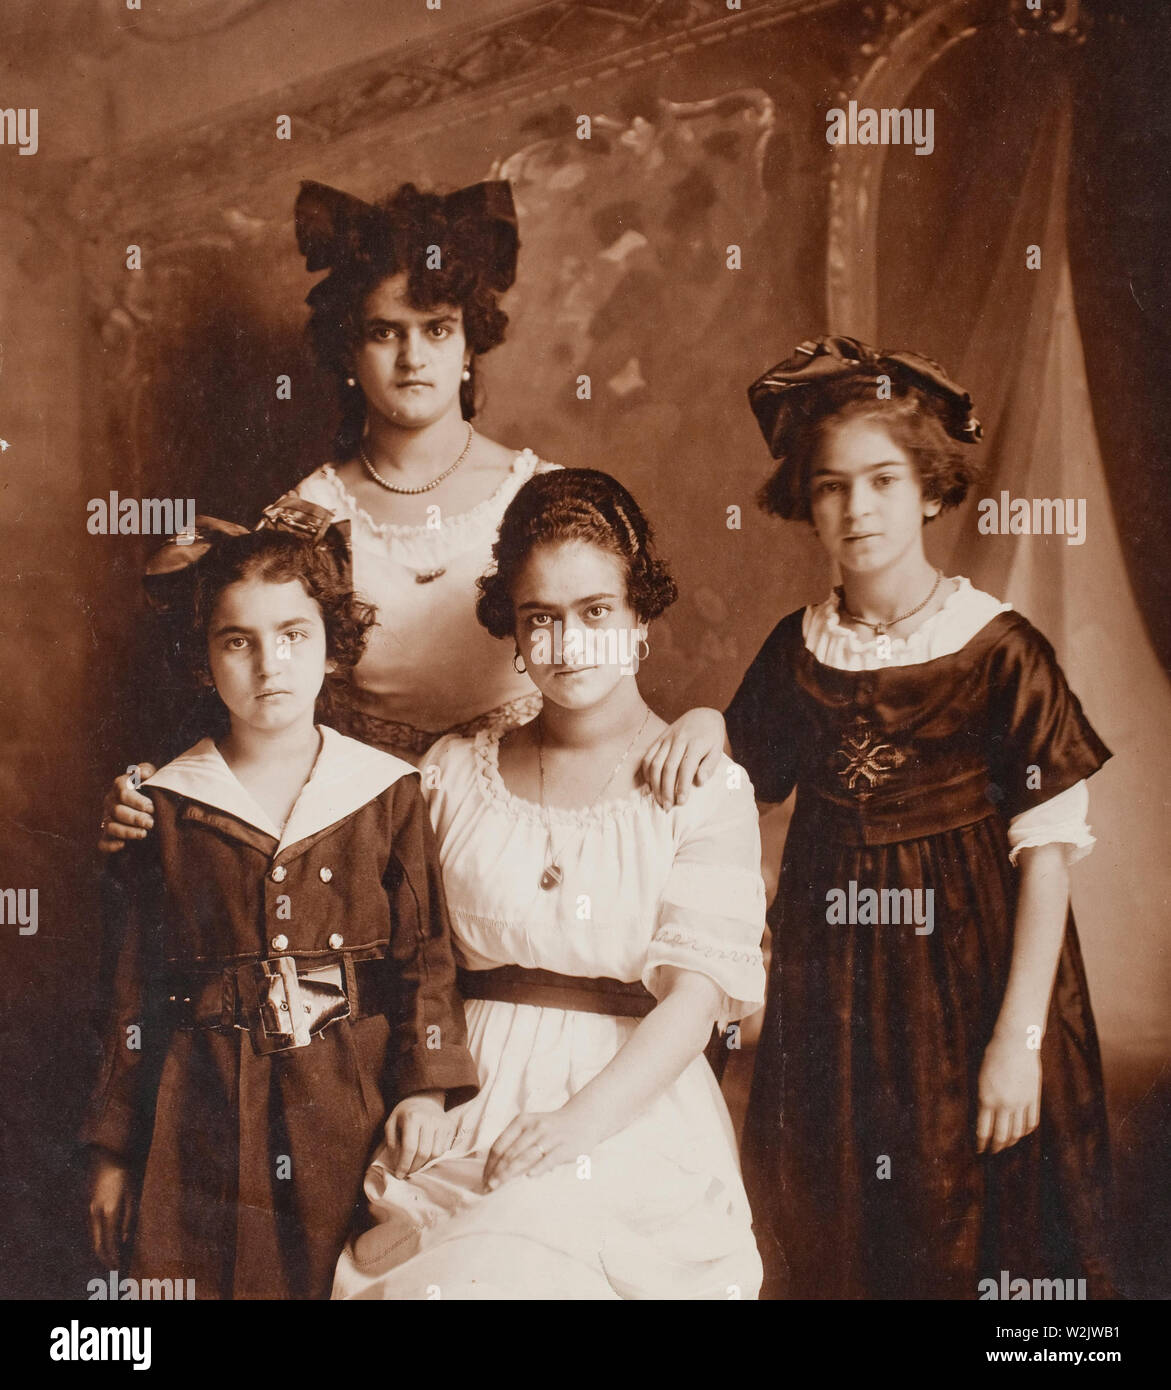 Frida Kahlo (1907 – 1954) (on the right) and her sisters Cristina, Matilde, and Adriana, photographed by their father, 1916 - Stock Image